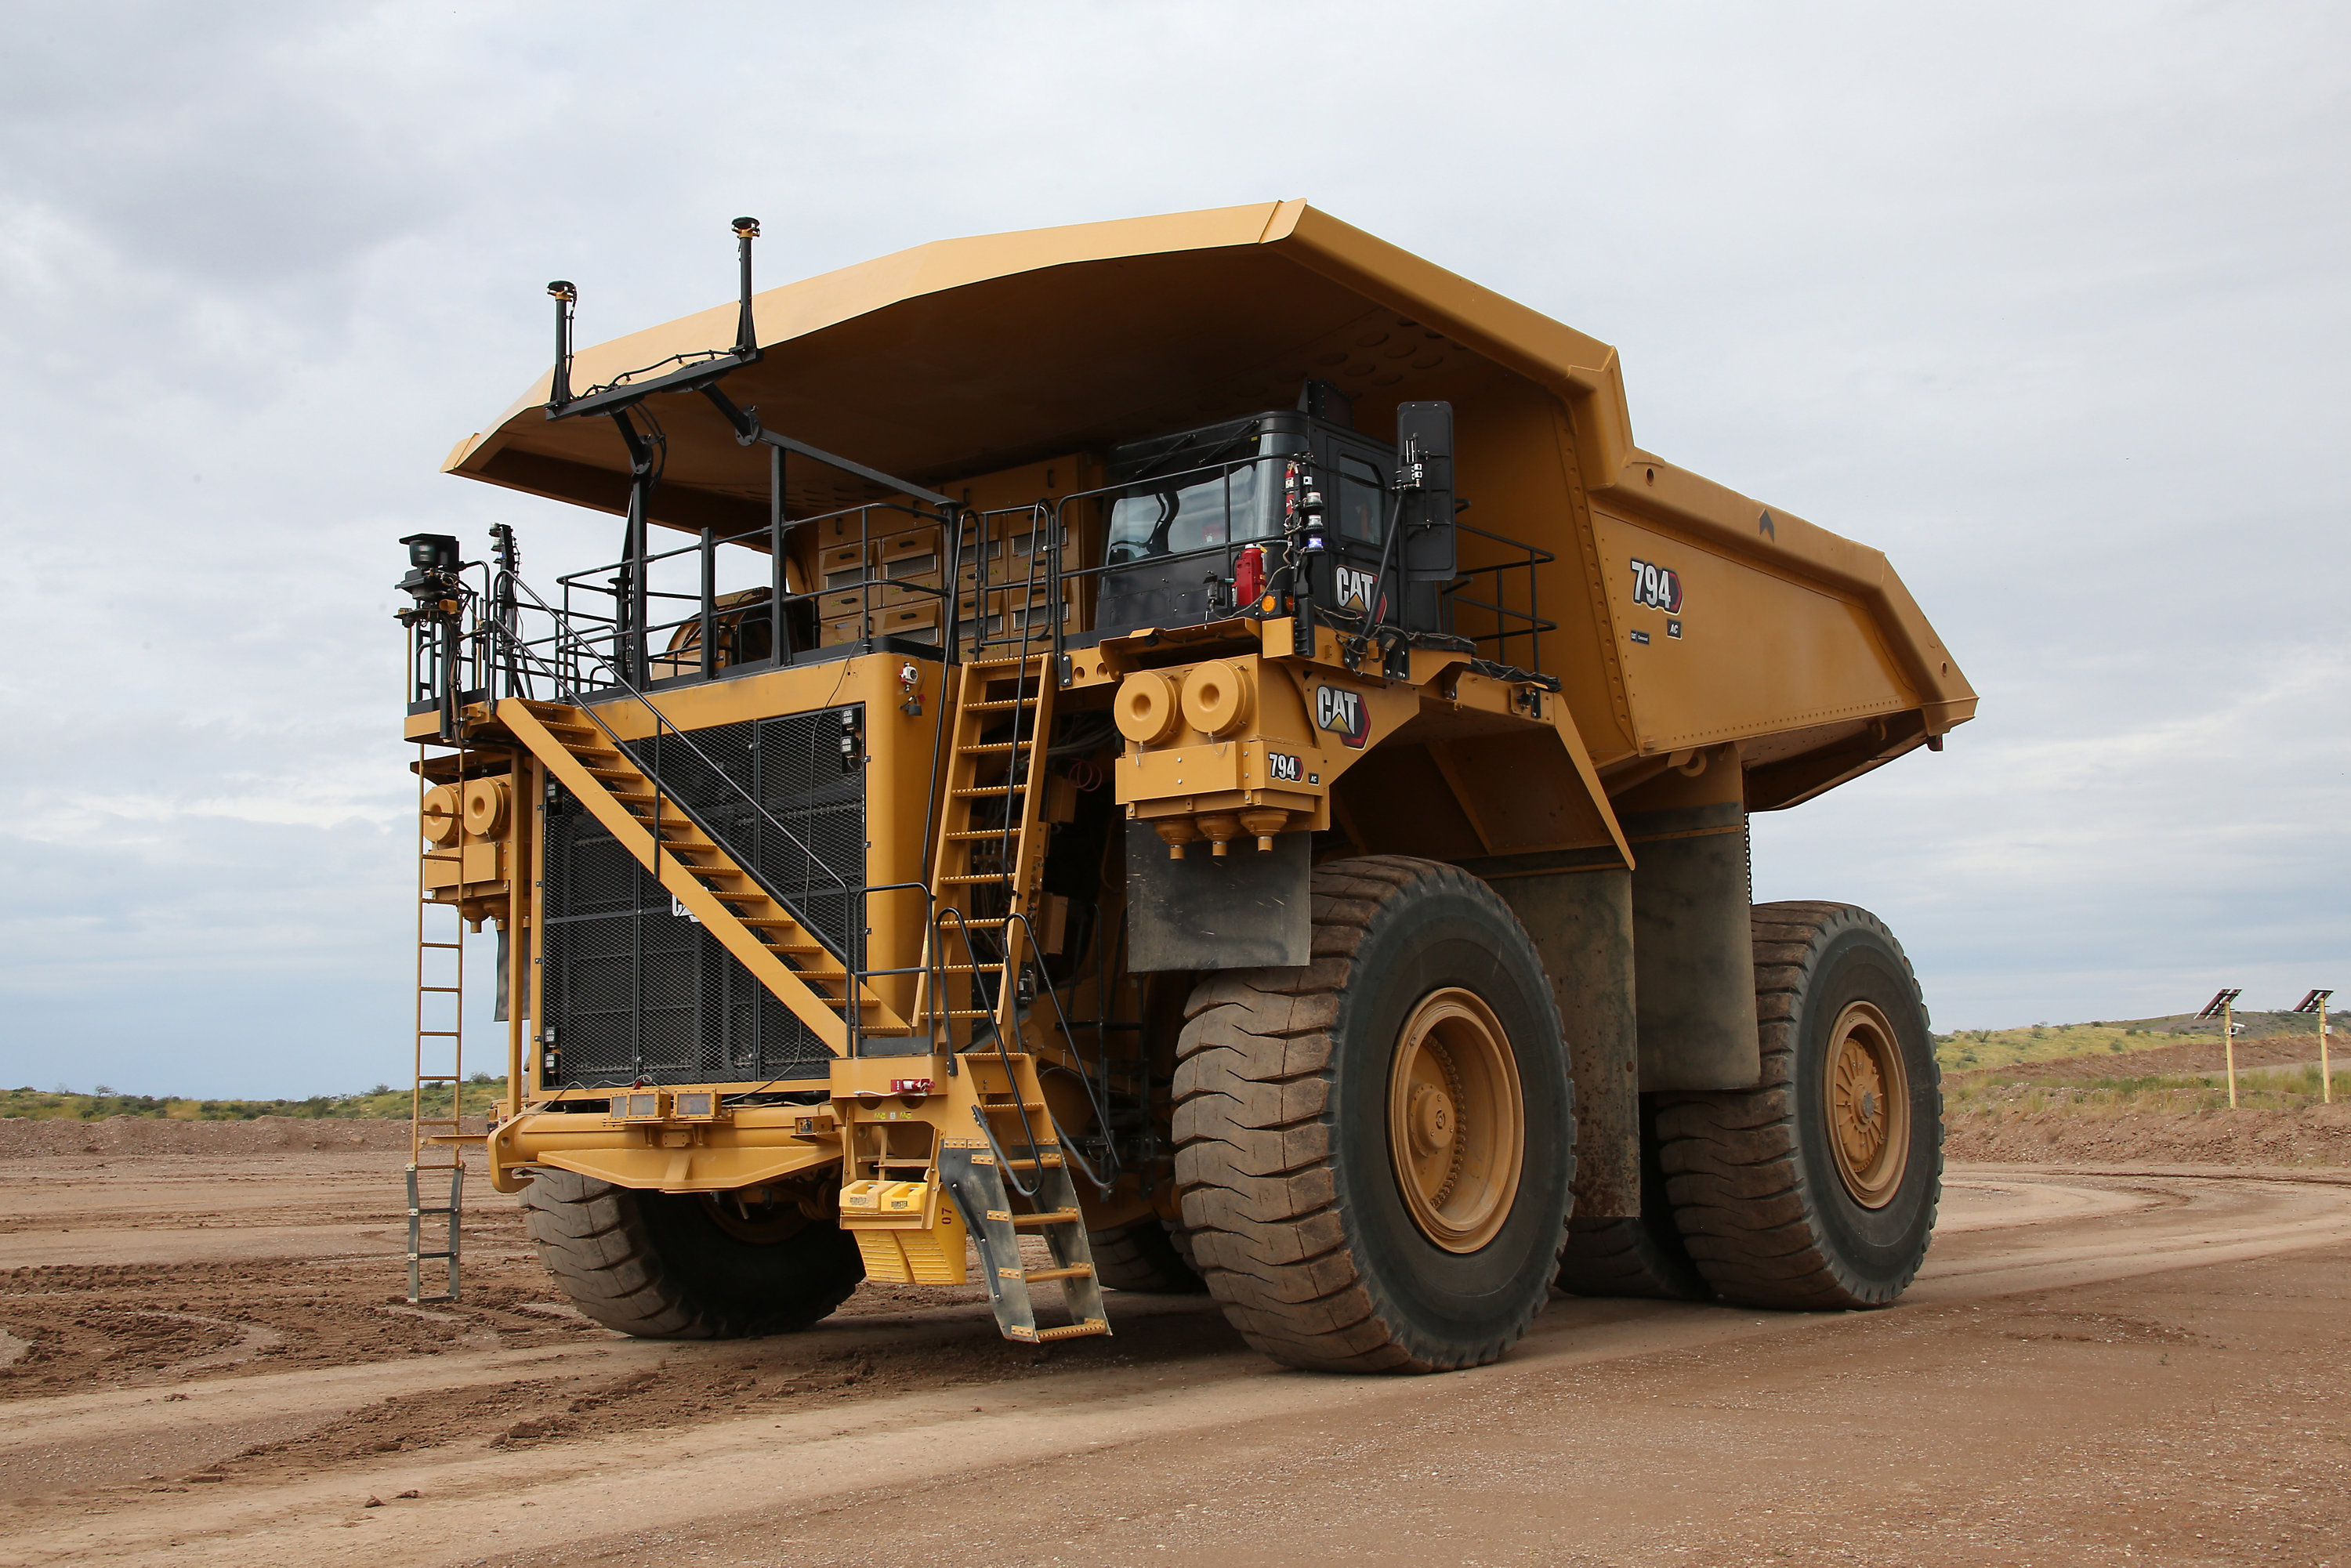 The Cat 794 AC Mining Truck is equipped with Cat® MineStar™ Command for hauling, an autonomous hauling solution.